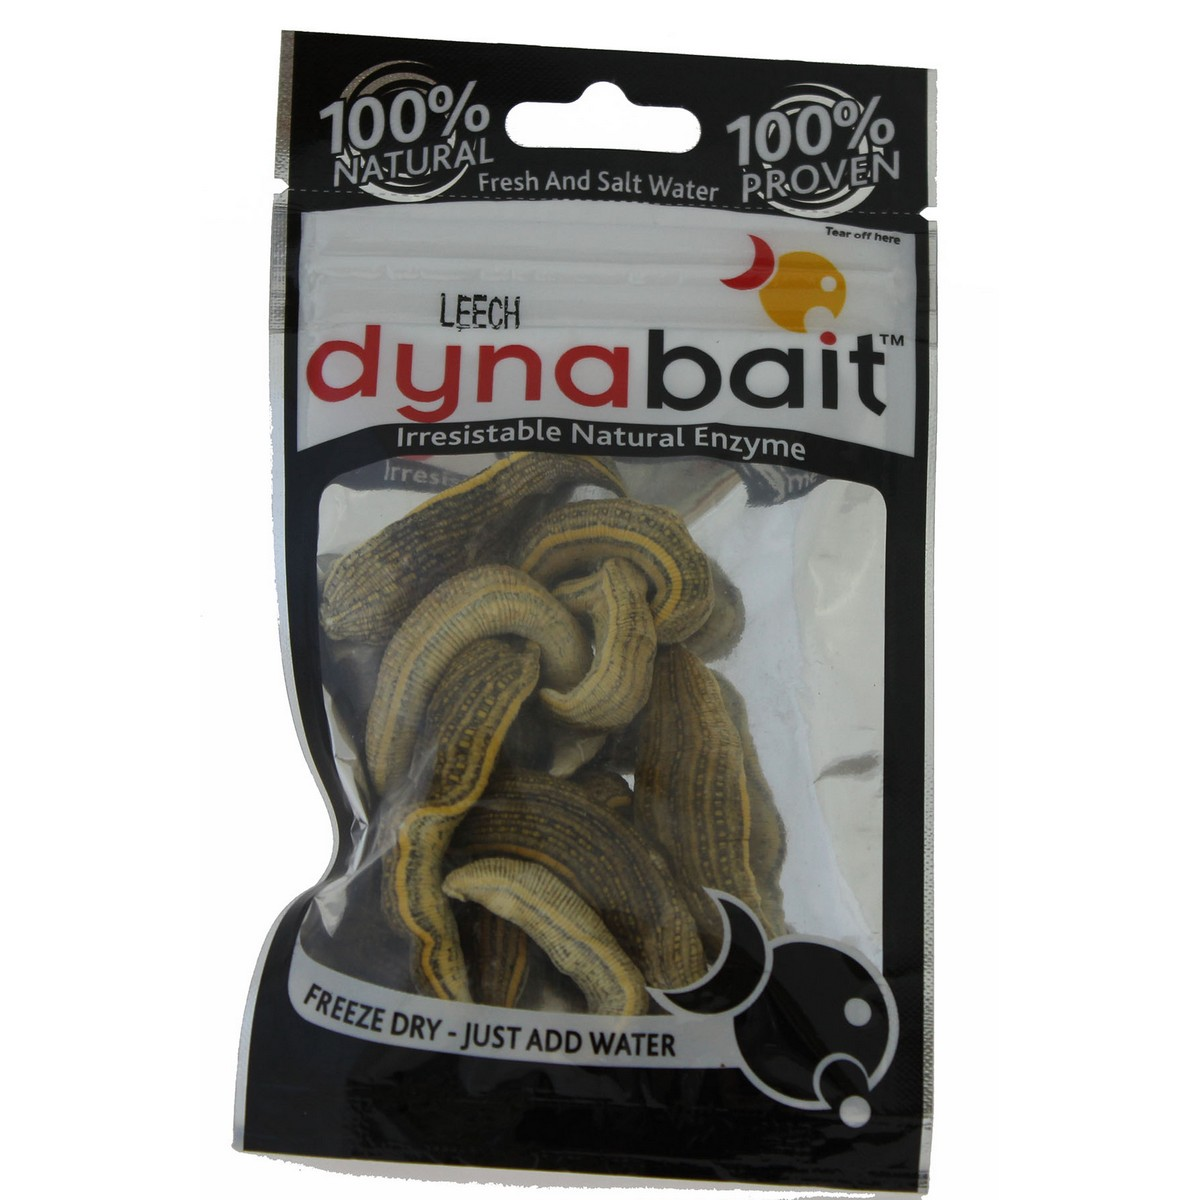 Dynabait Freeze Dried Leech - изсушени пиявици